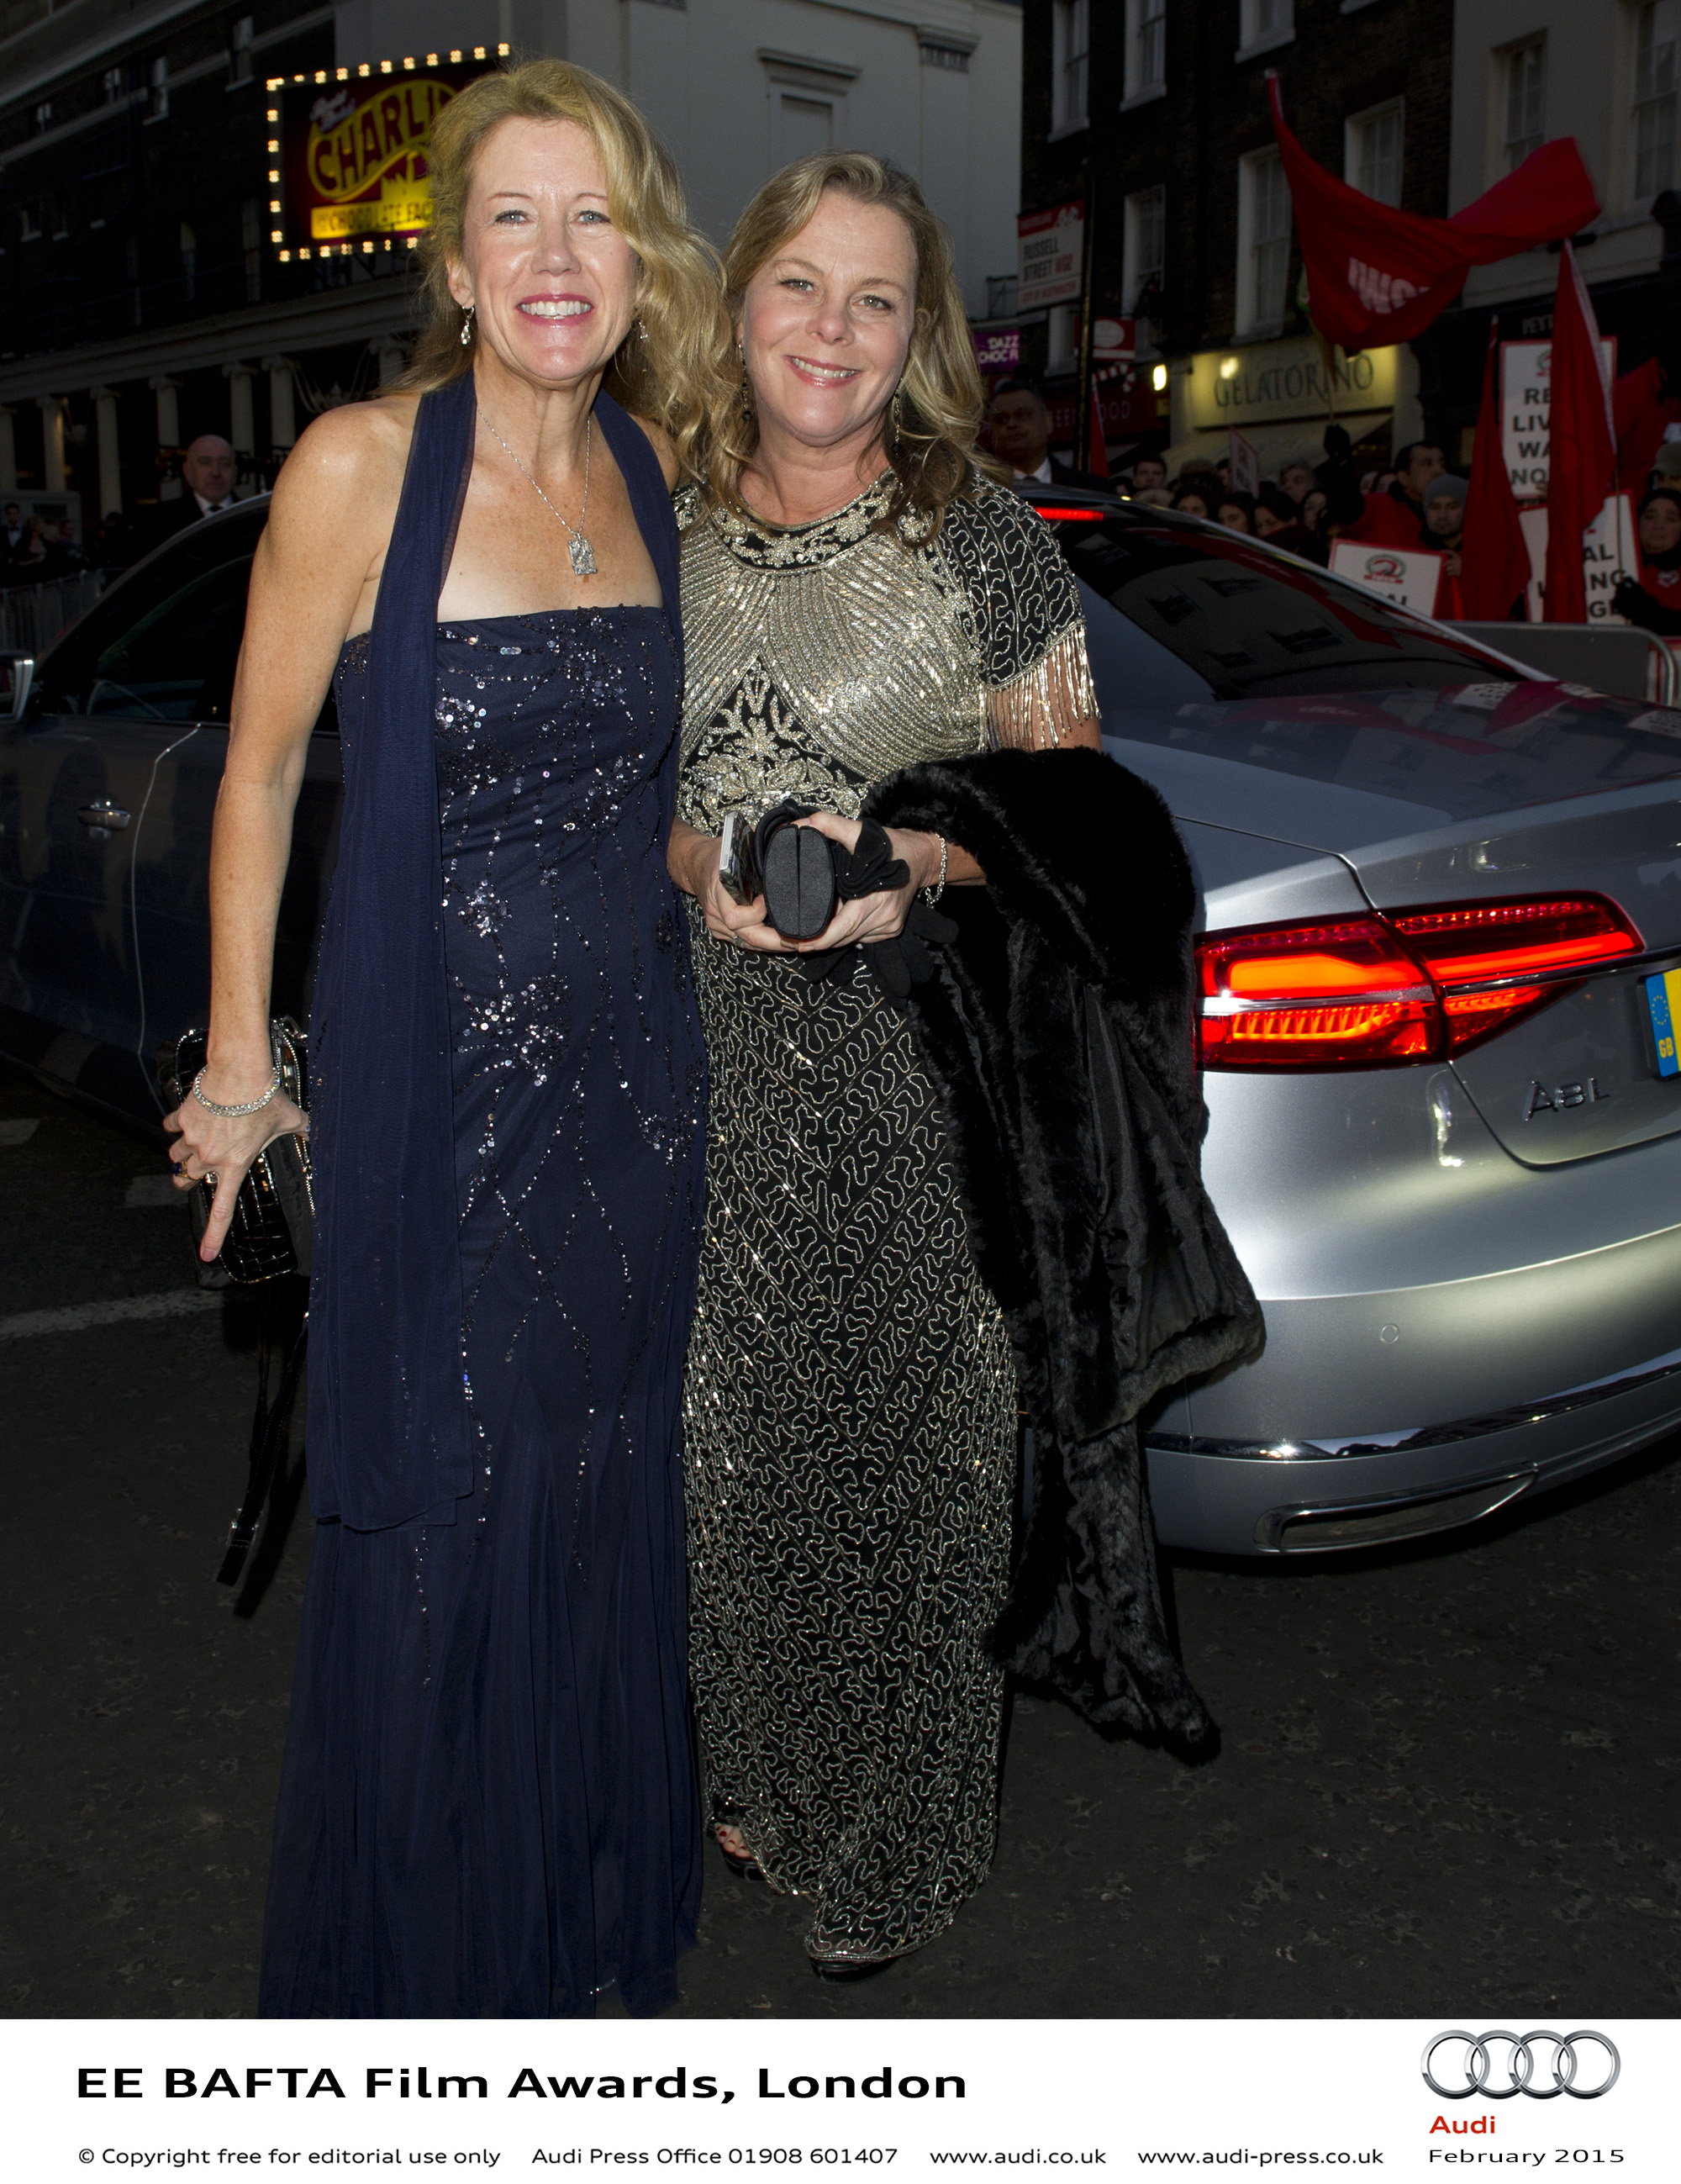 Lisa Brucs and Guest - EE BAFTA Film Awards